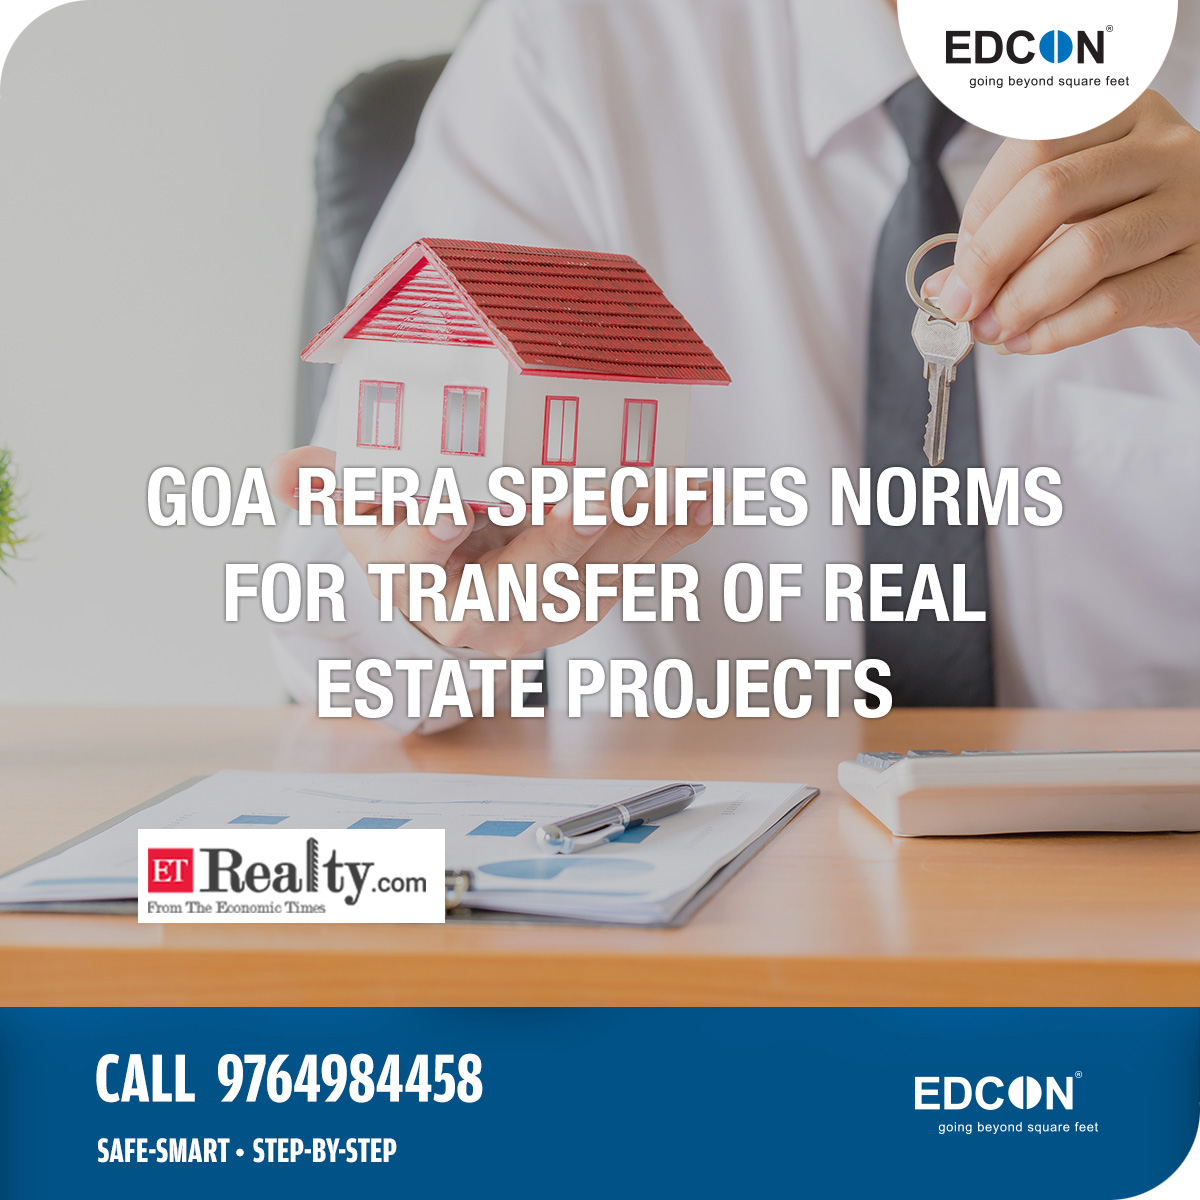 Goa RERA specifies norms for transfer of real estate projects